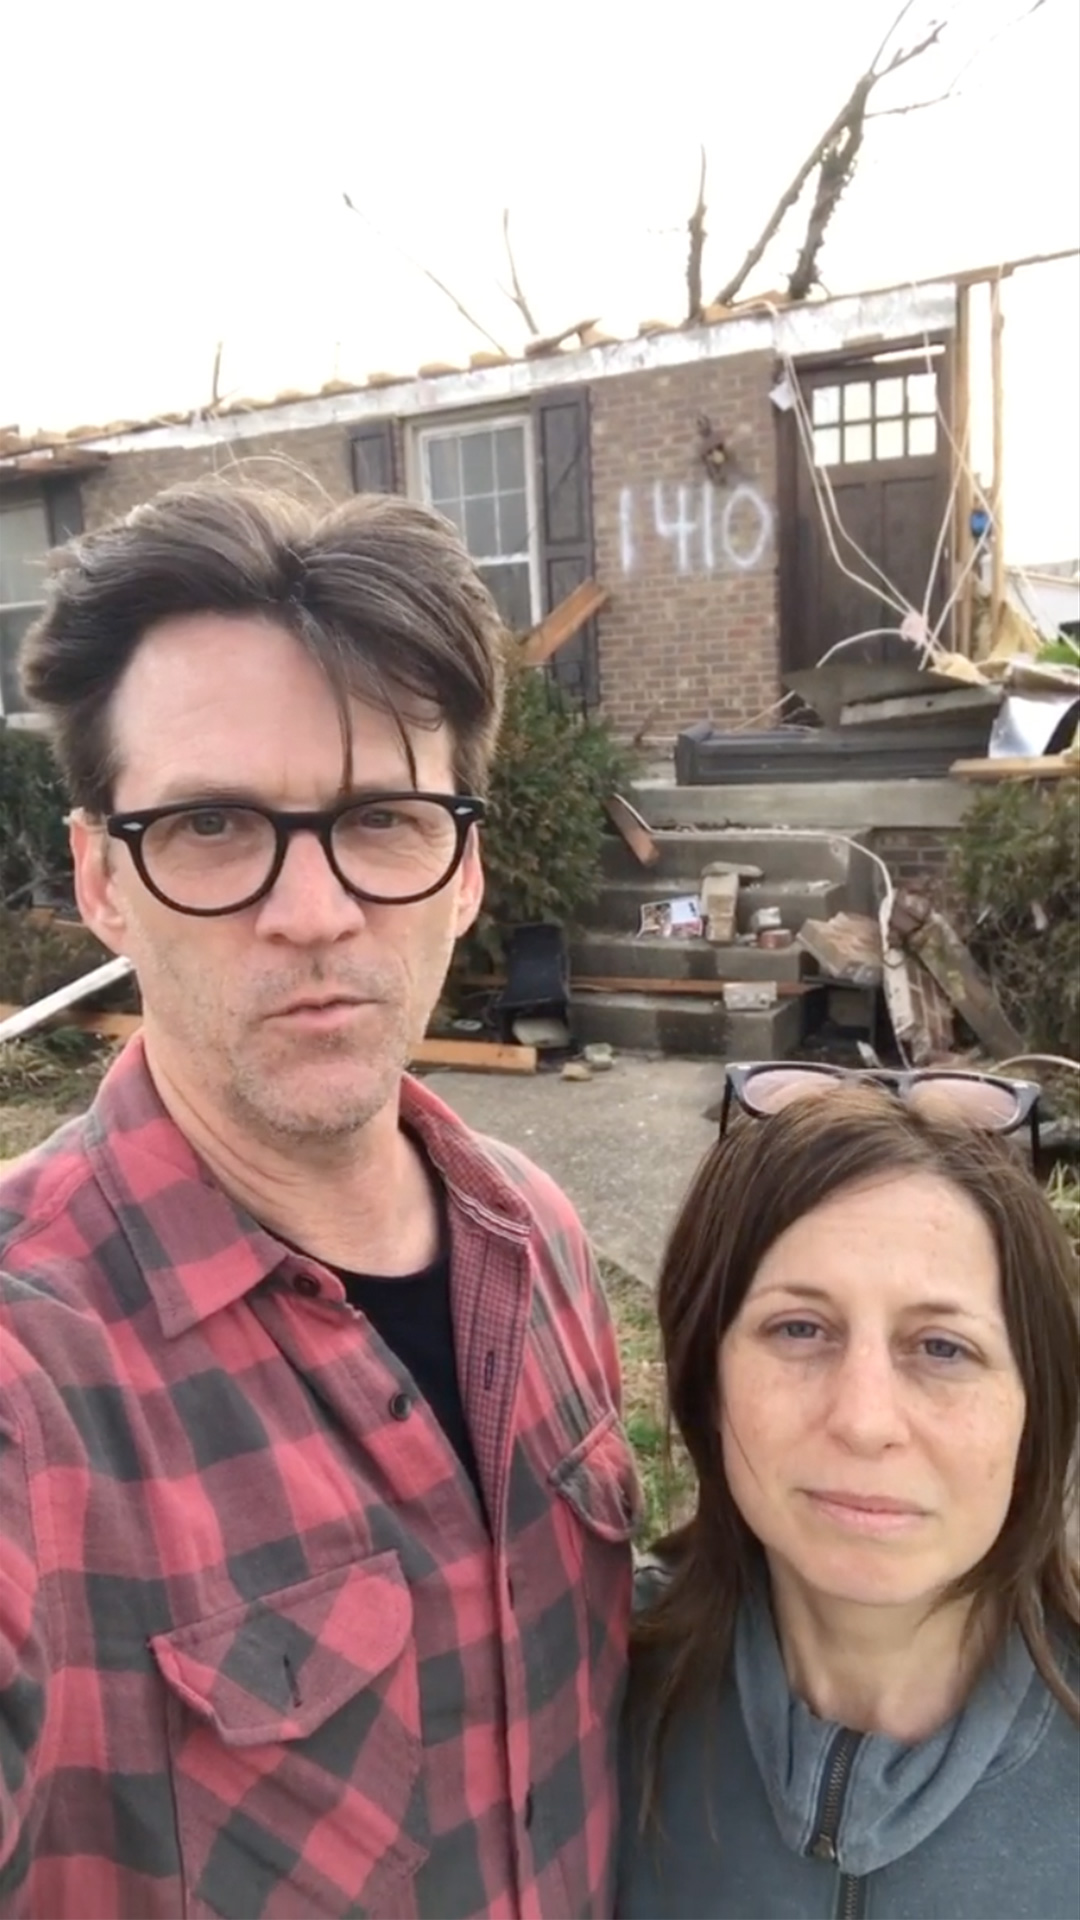 Steve Misamore, Dierks Bentley's longtime drummer Steve Misamore shows home destroyed by tornado: 'it's just bricks and lumber and nails'